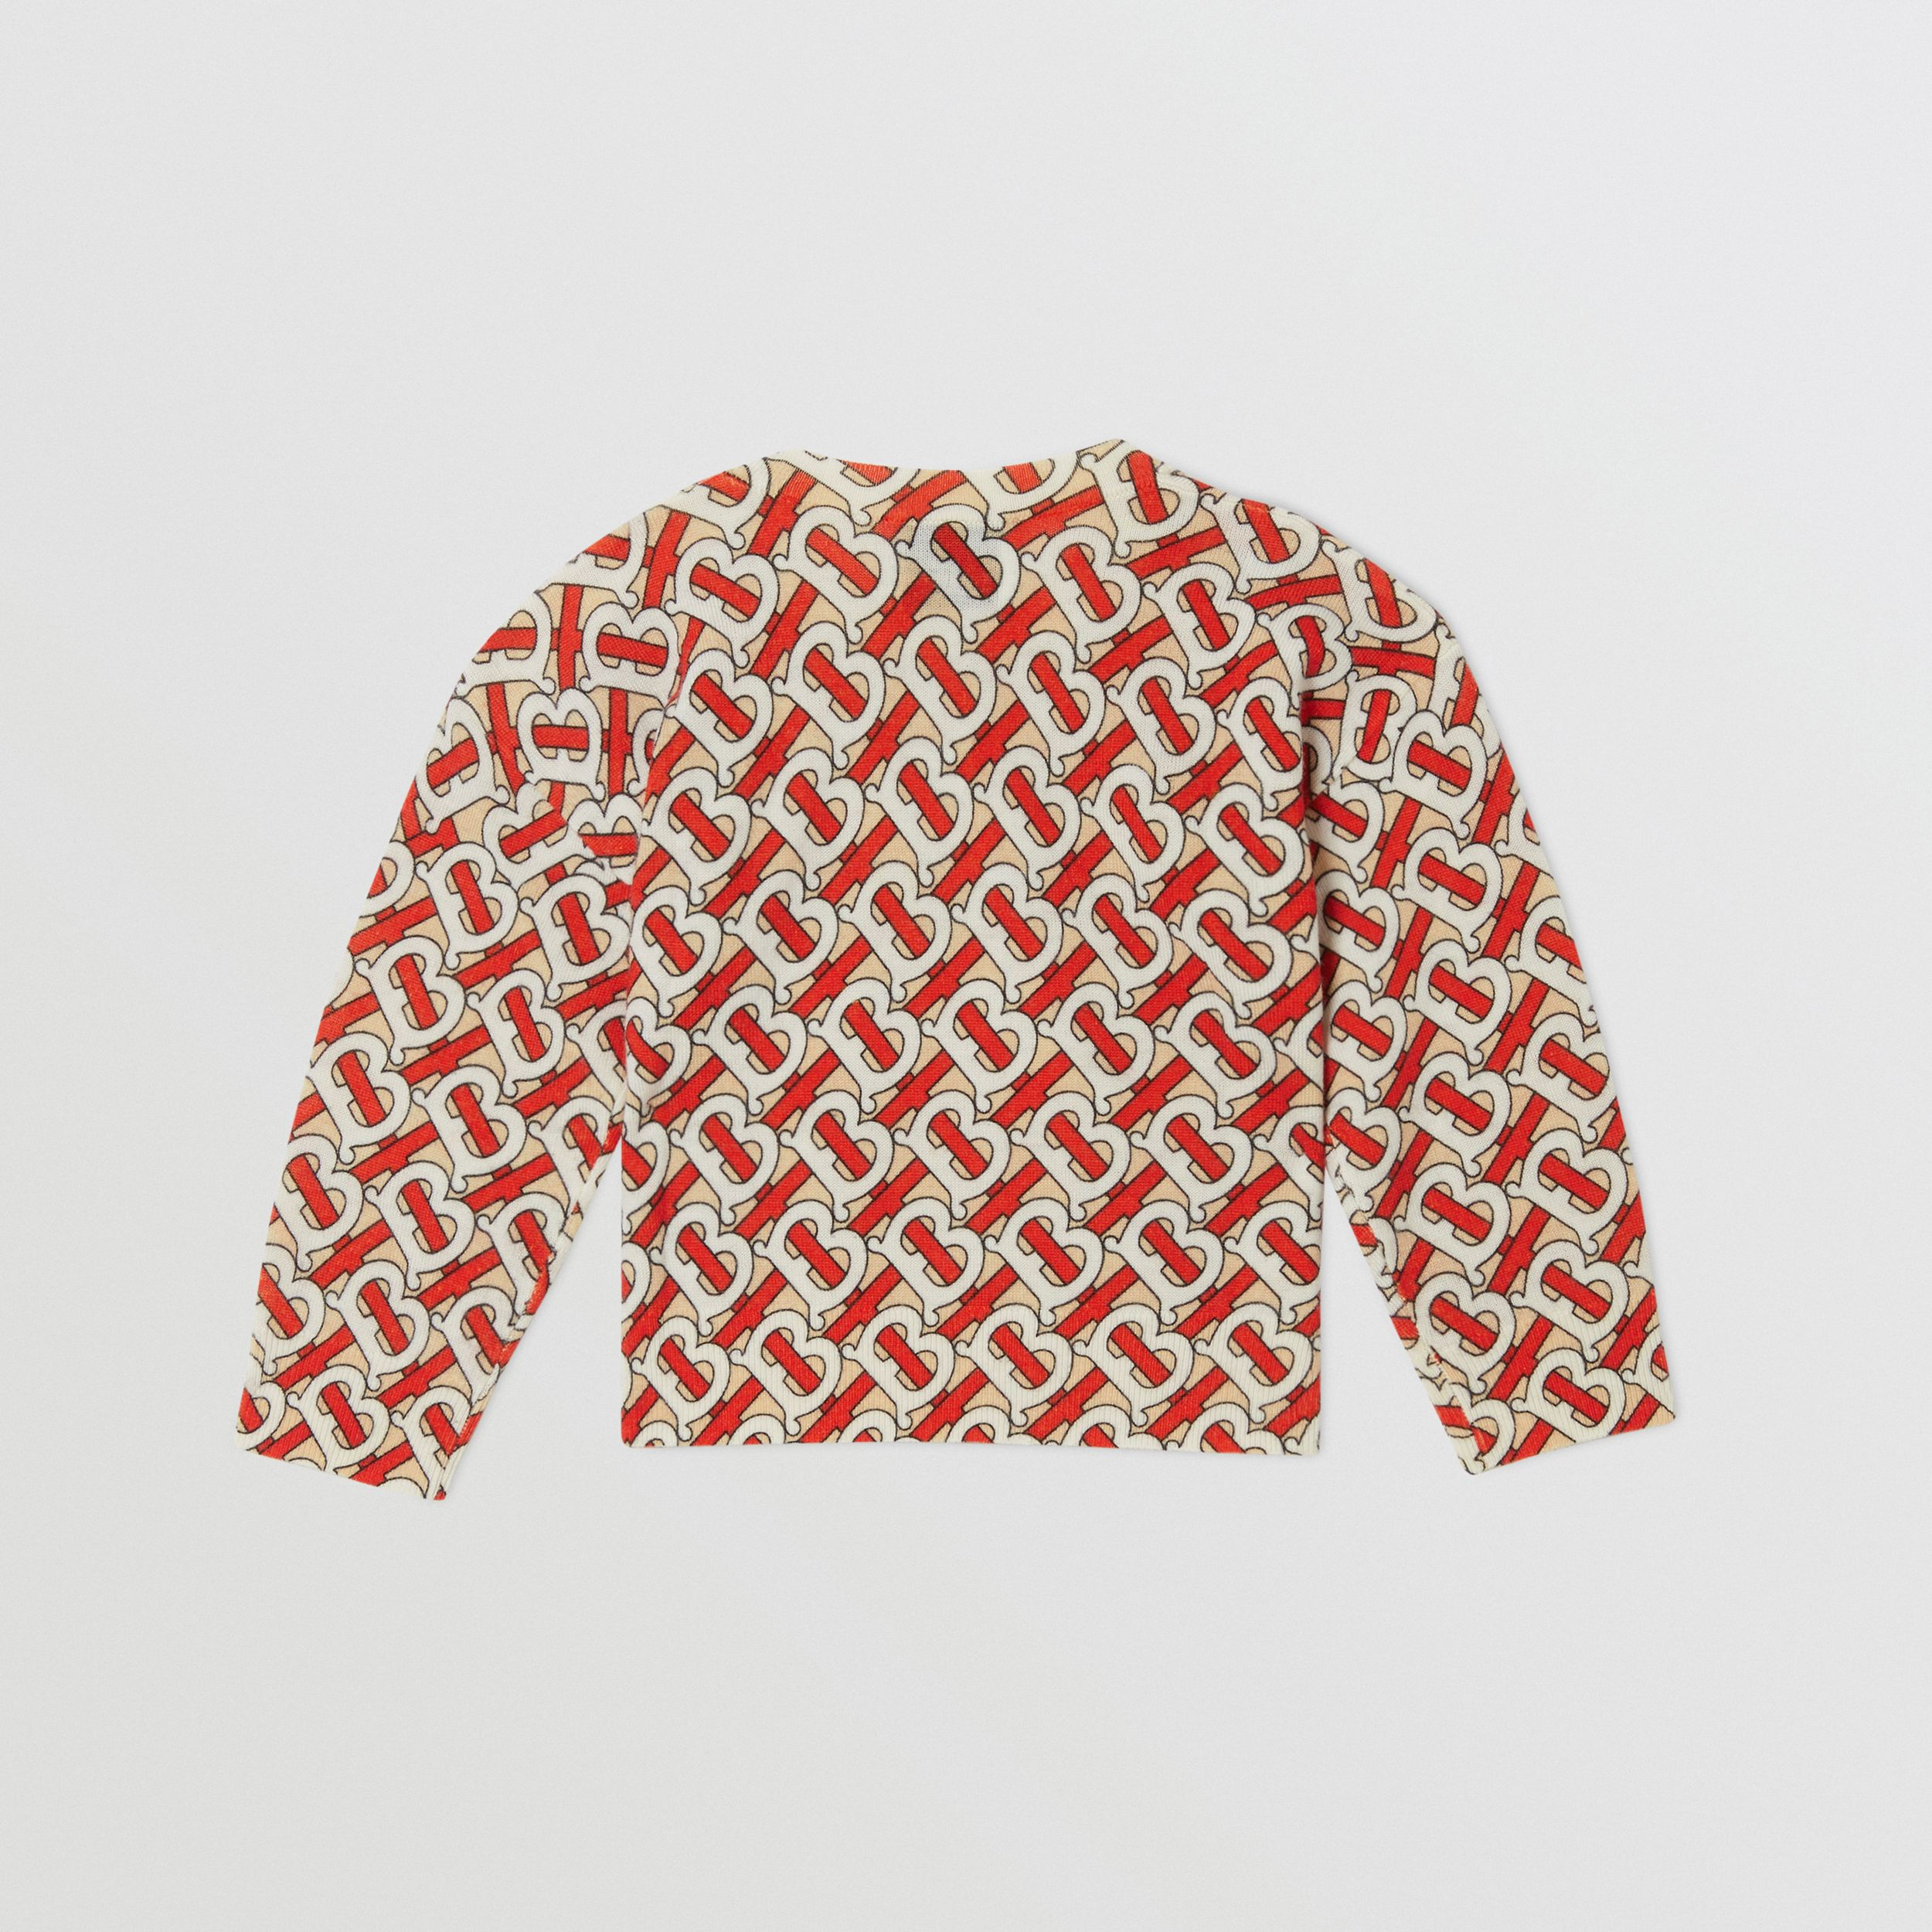 Monogram Print Merino Wool Sweater in Vermilion Red - Children | Burberry - 4